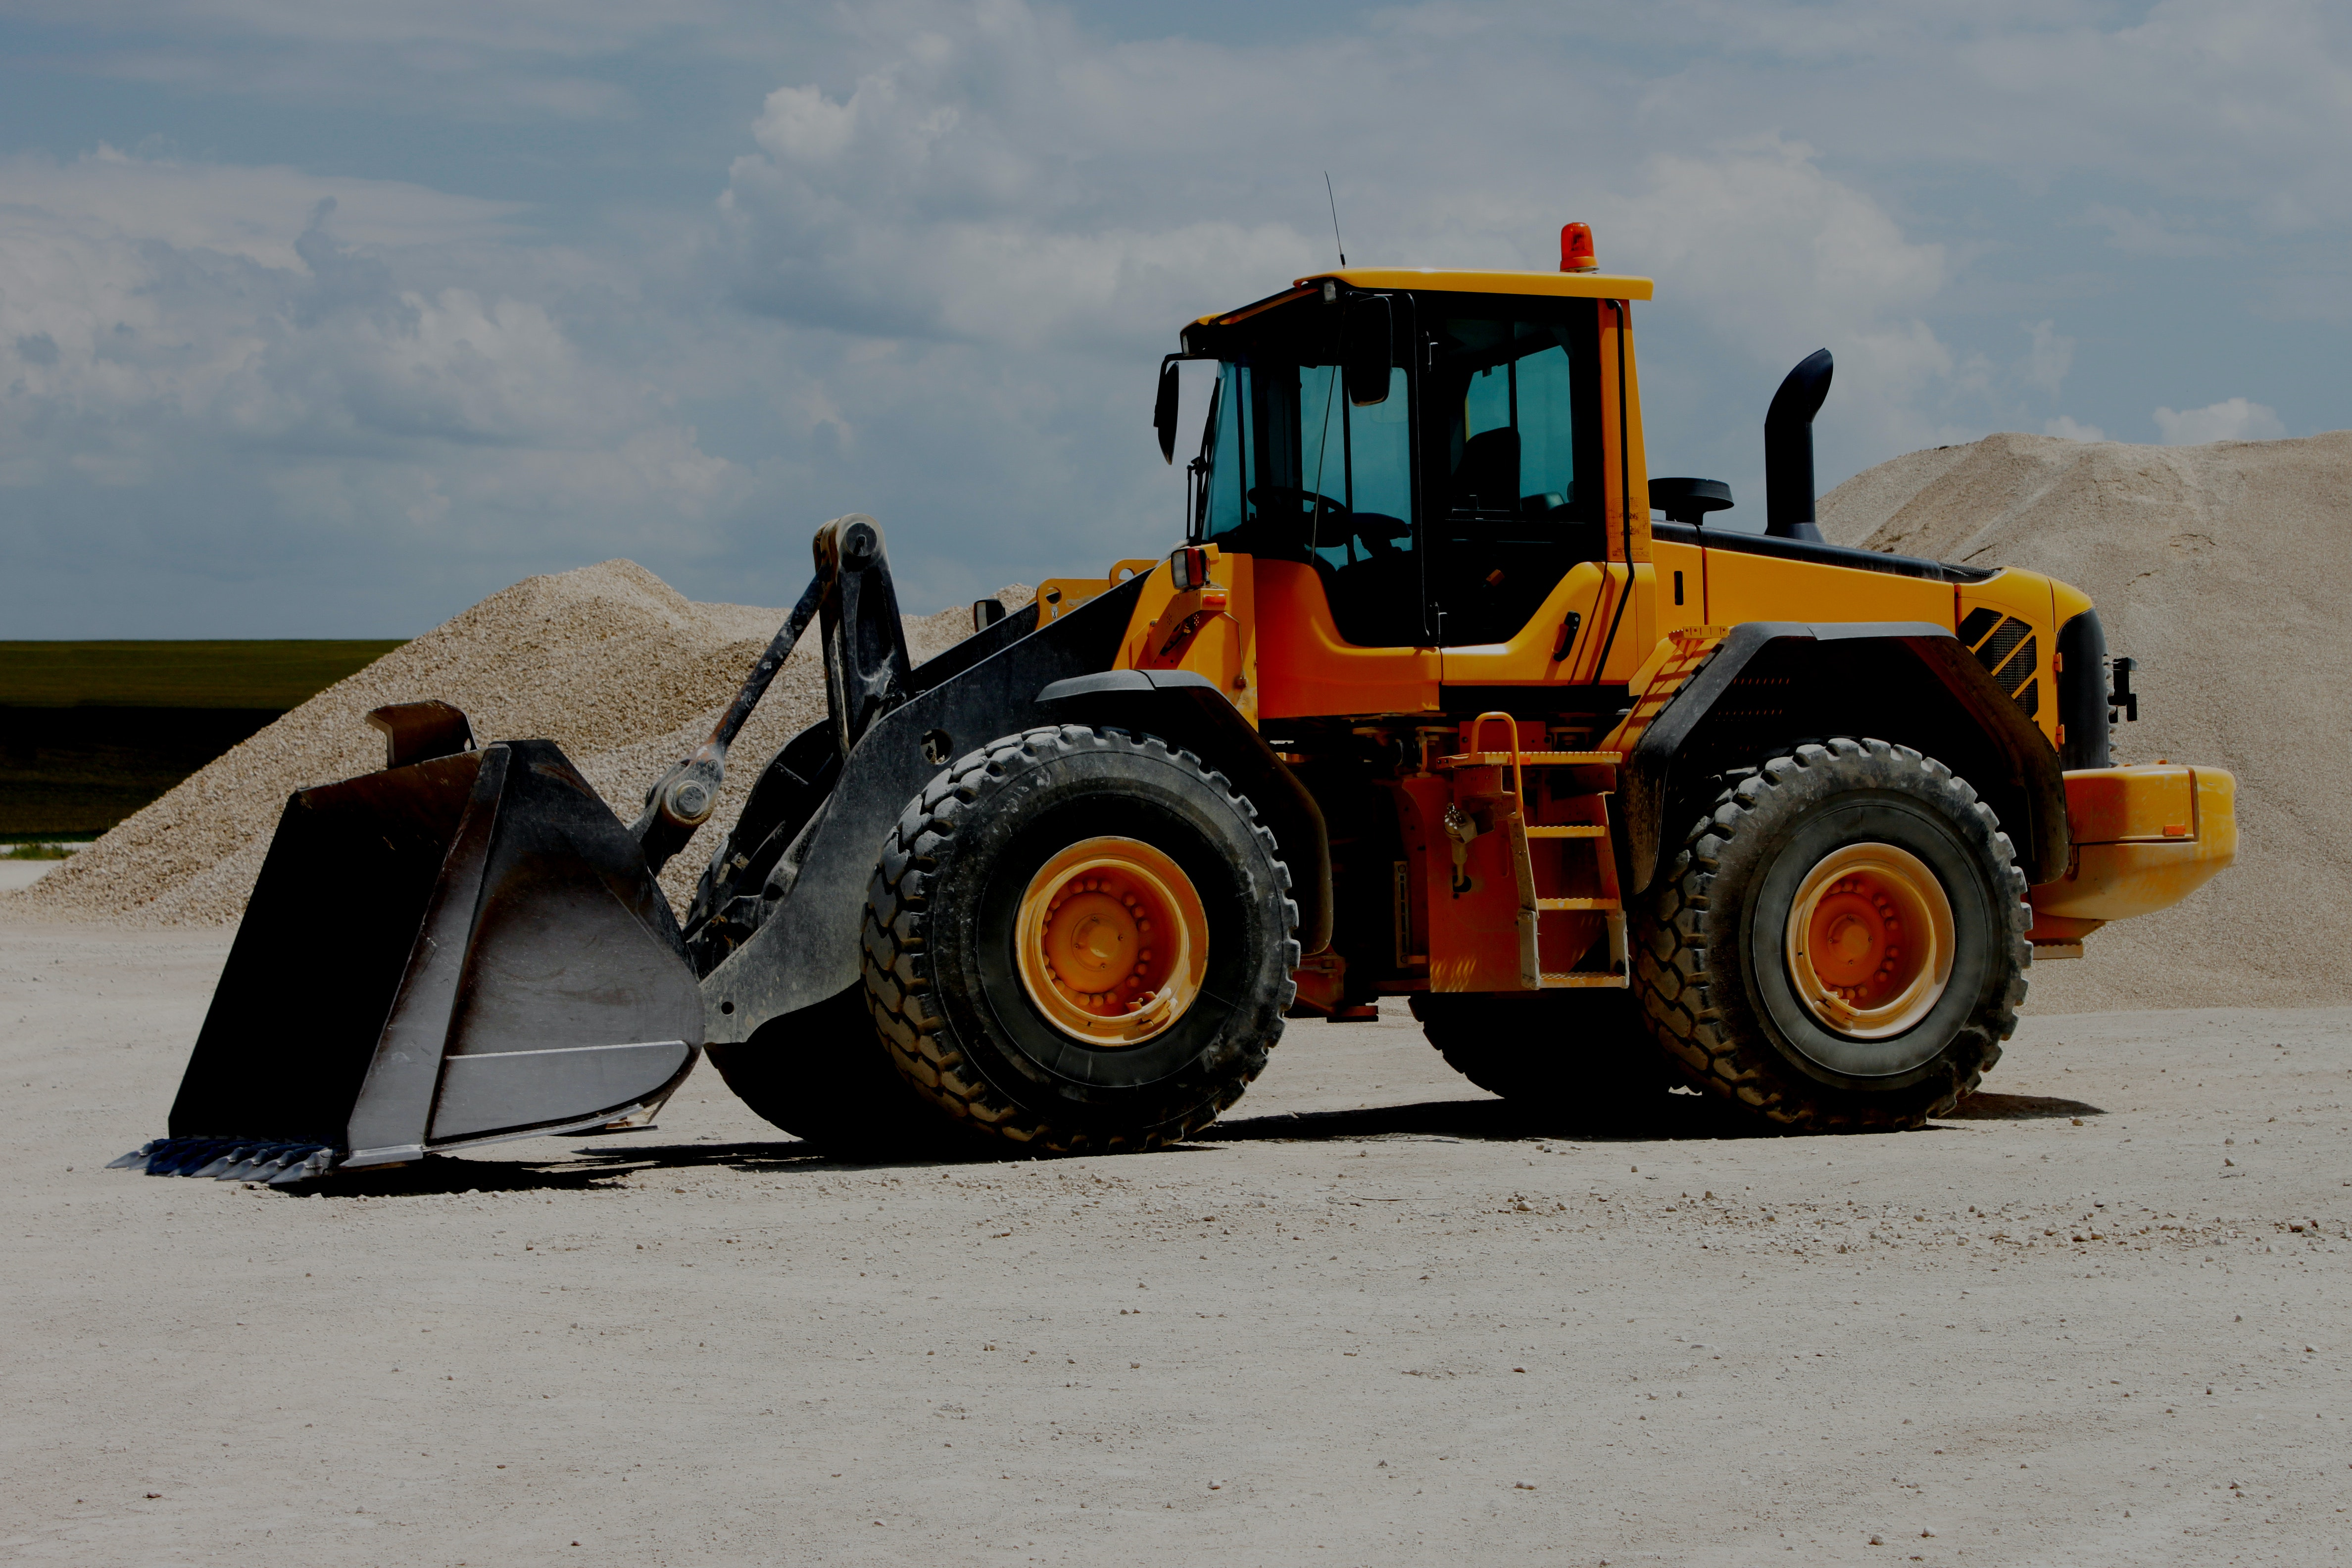 3-6m cubed Bucket Capacity Loader for hire - Consolidated Mining and Civil